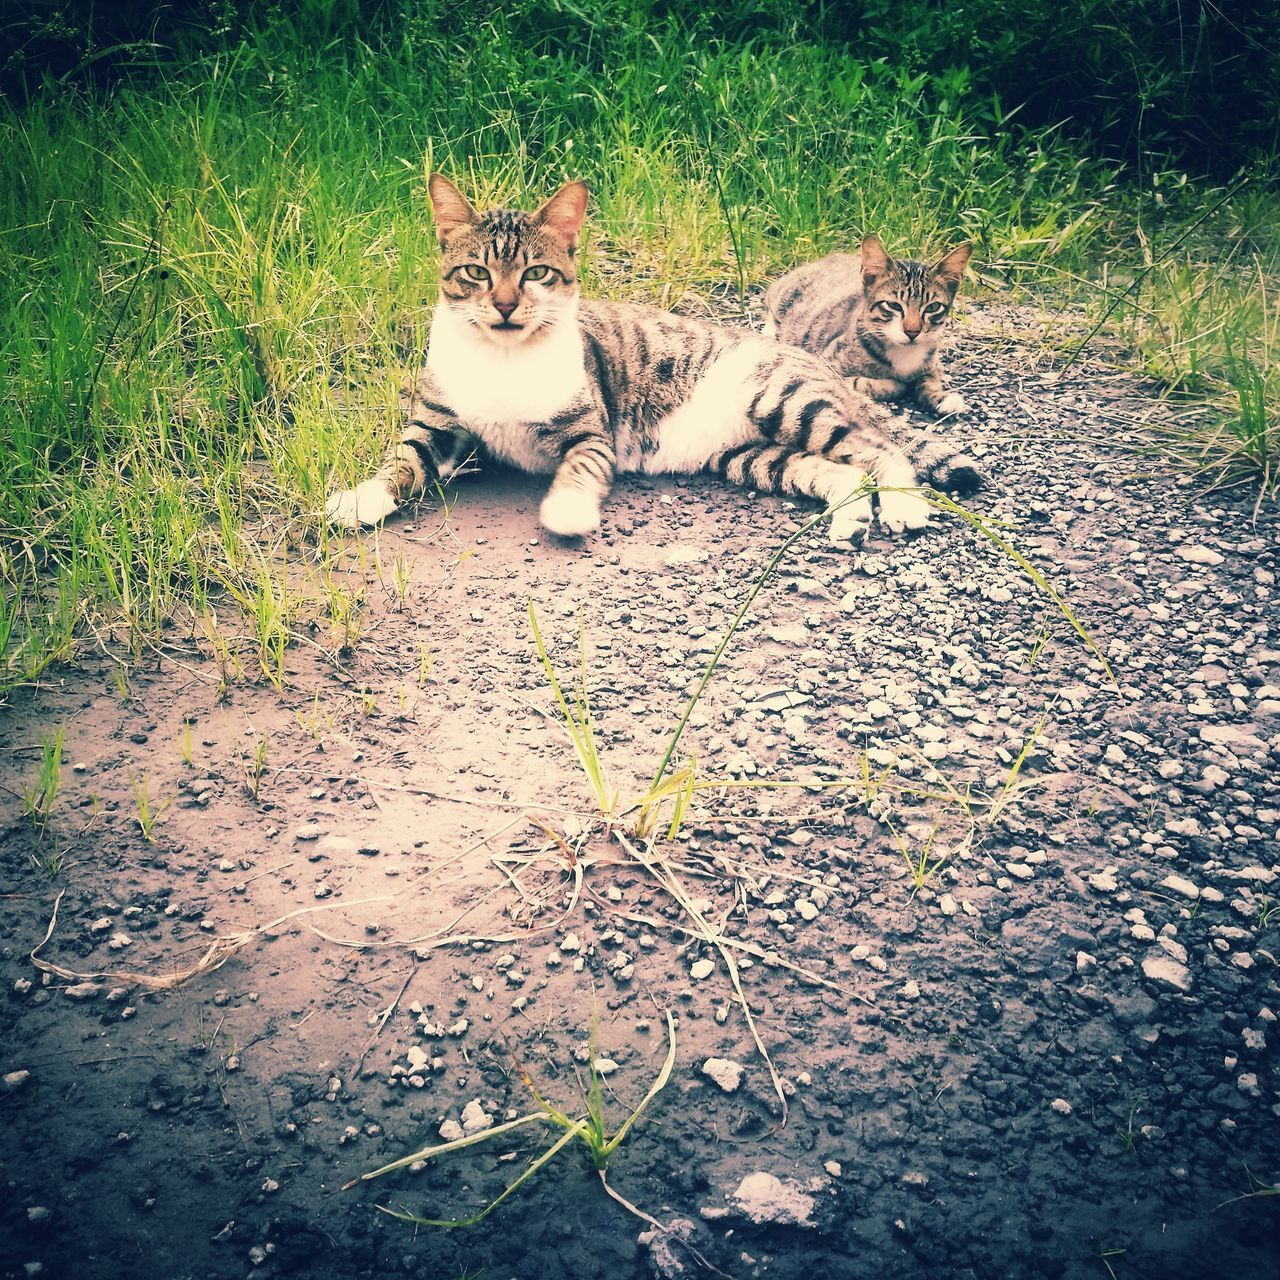 Wild cat. Domestic Cat Animal Themes Outdoors Domestic Animals Pets Huaweiphotography Hua Wei P9 Plus Animal Huawei P9 Plus HuaweiP9 Homelessness  HuaweiP9Photography Homeless Cats Homeless Cat Kitten Homeless Animal Animalphotography Homeless Kitten Looking At Camera Homeless Cat Mammal